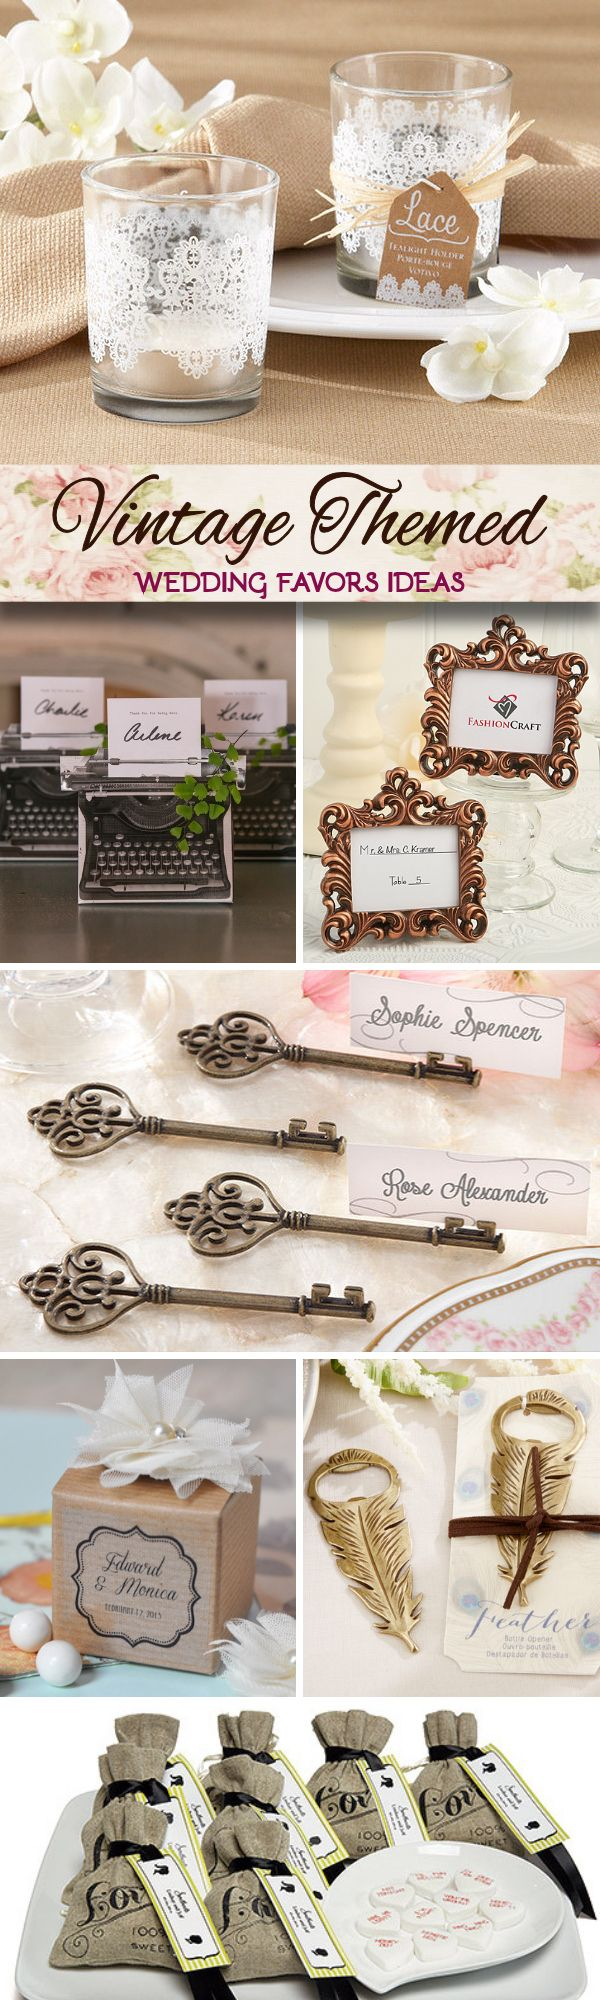 Vintage Themed Wedding Favor IdeasBest 25  Vintage wedding favors ideas on Pinterest   Eclectic  . Antique Wedding Favors. Home Design Ideas